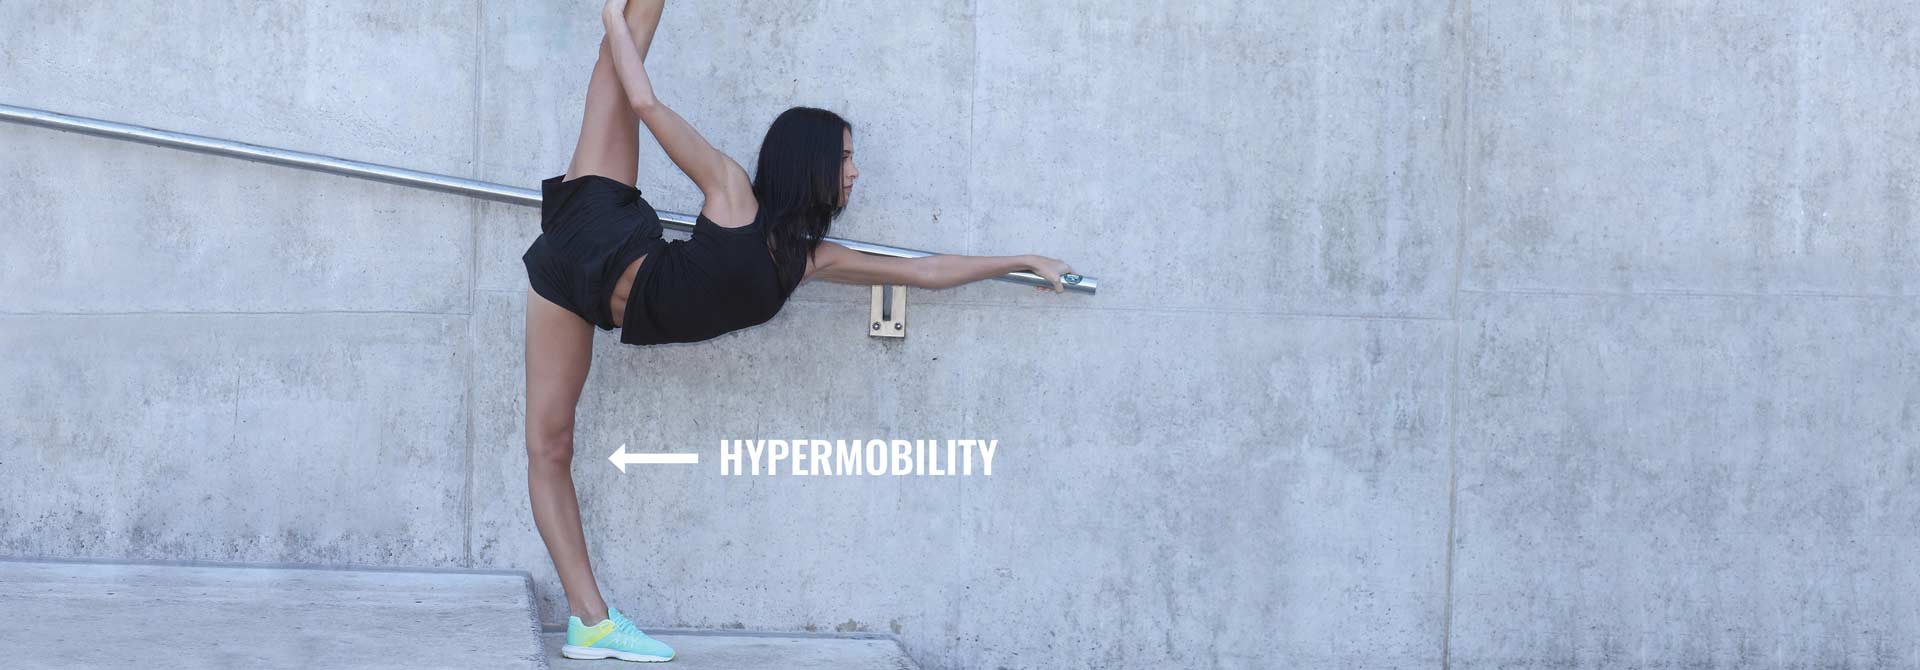 Hypermobile joints need to be strengthened with care.